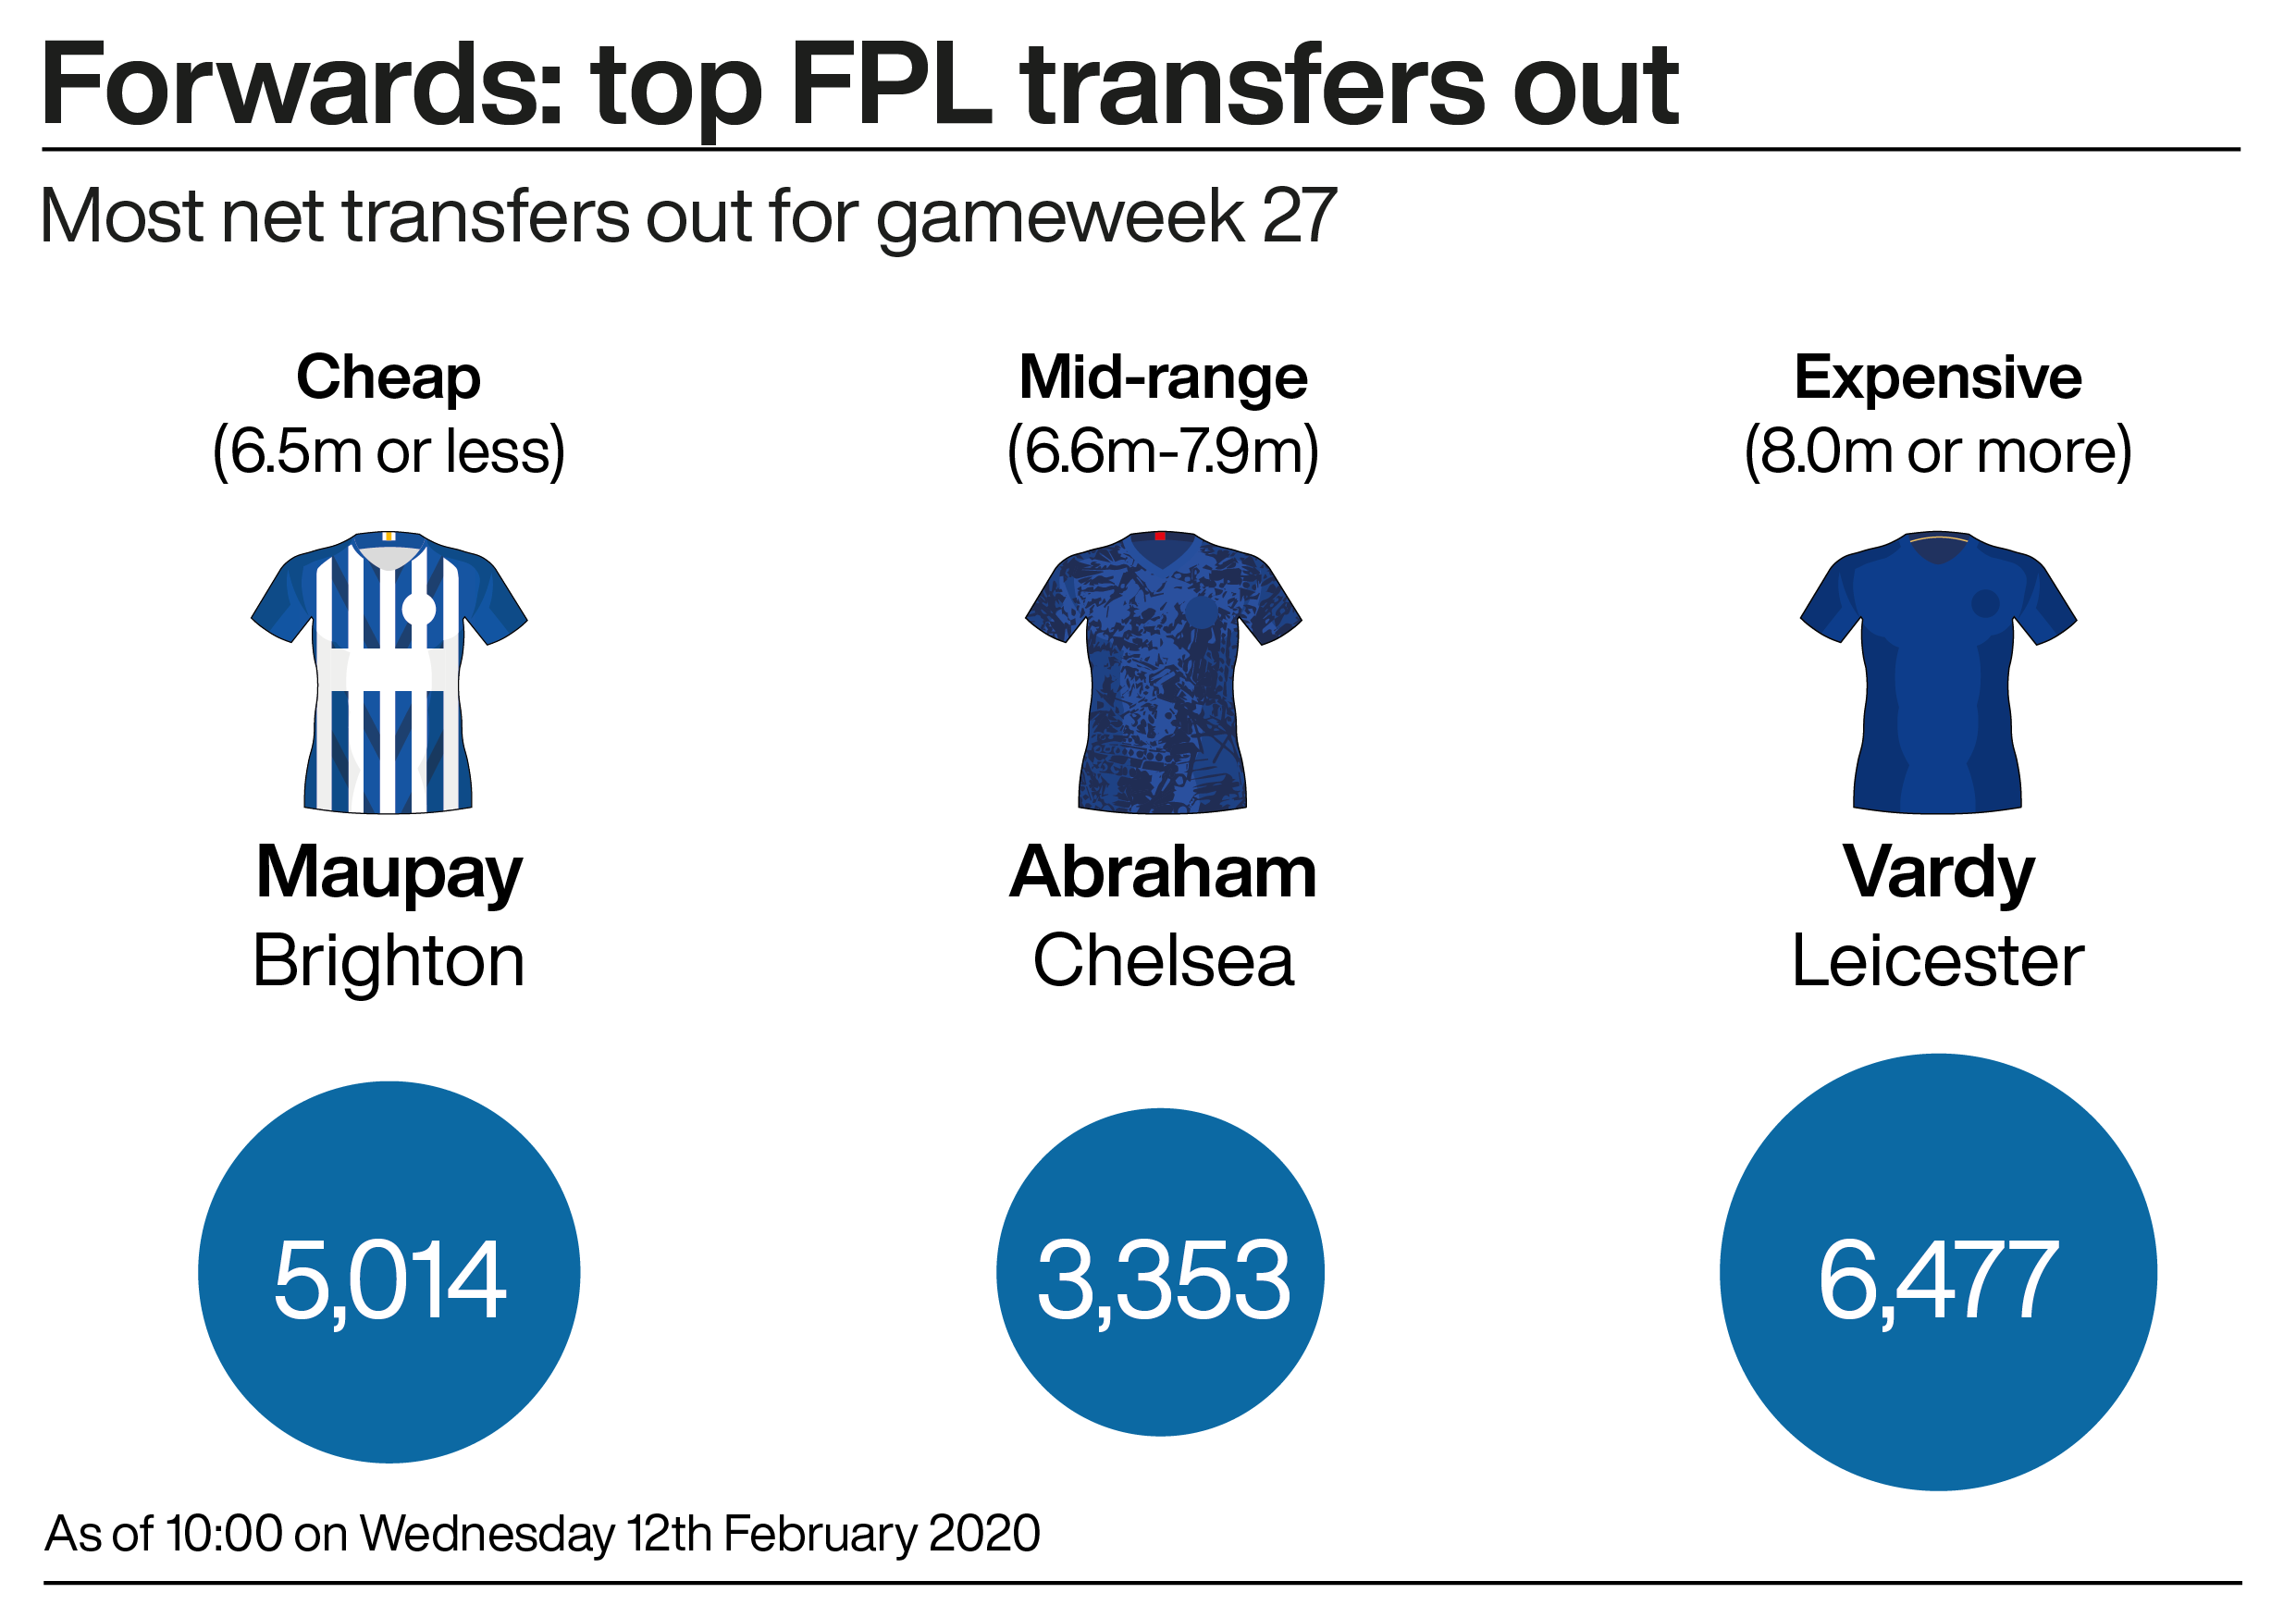 A graphic showing the most popular Fantasy Premier League forwards ahead of gameweek 27